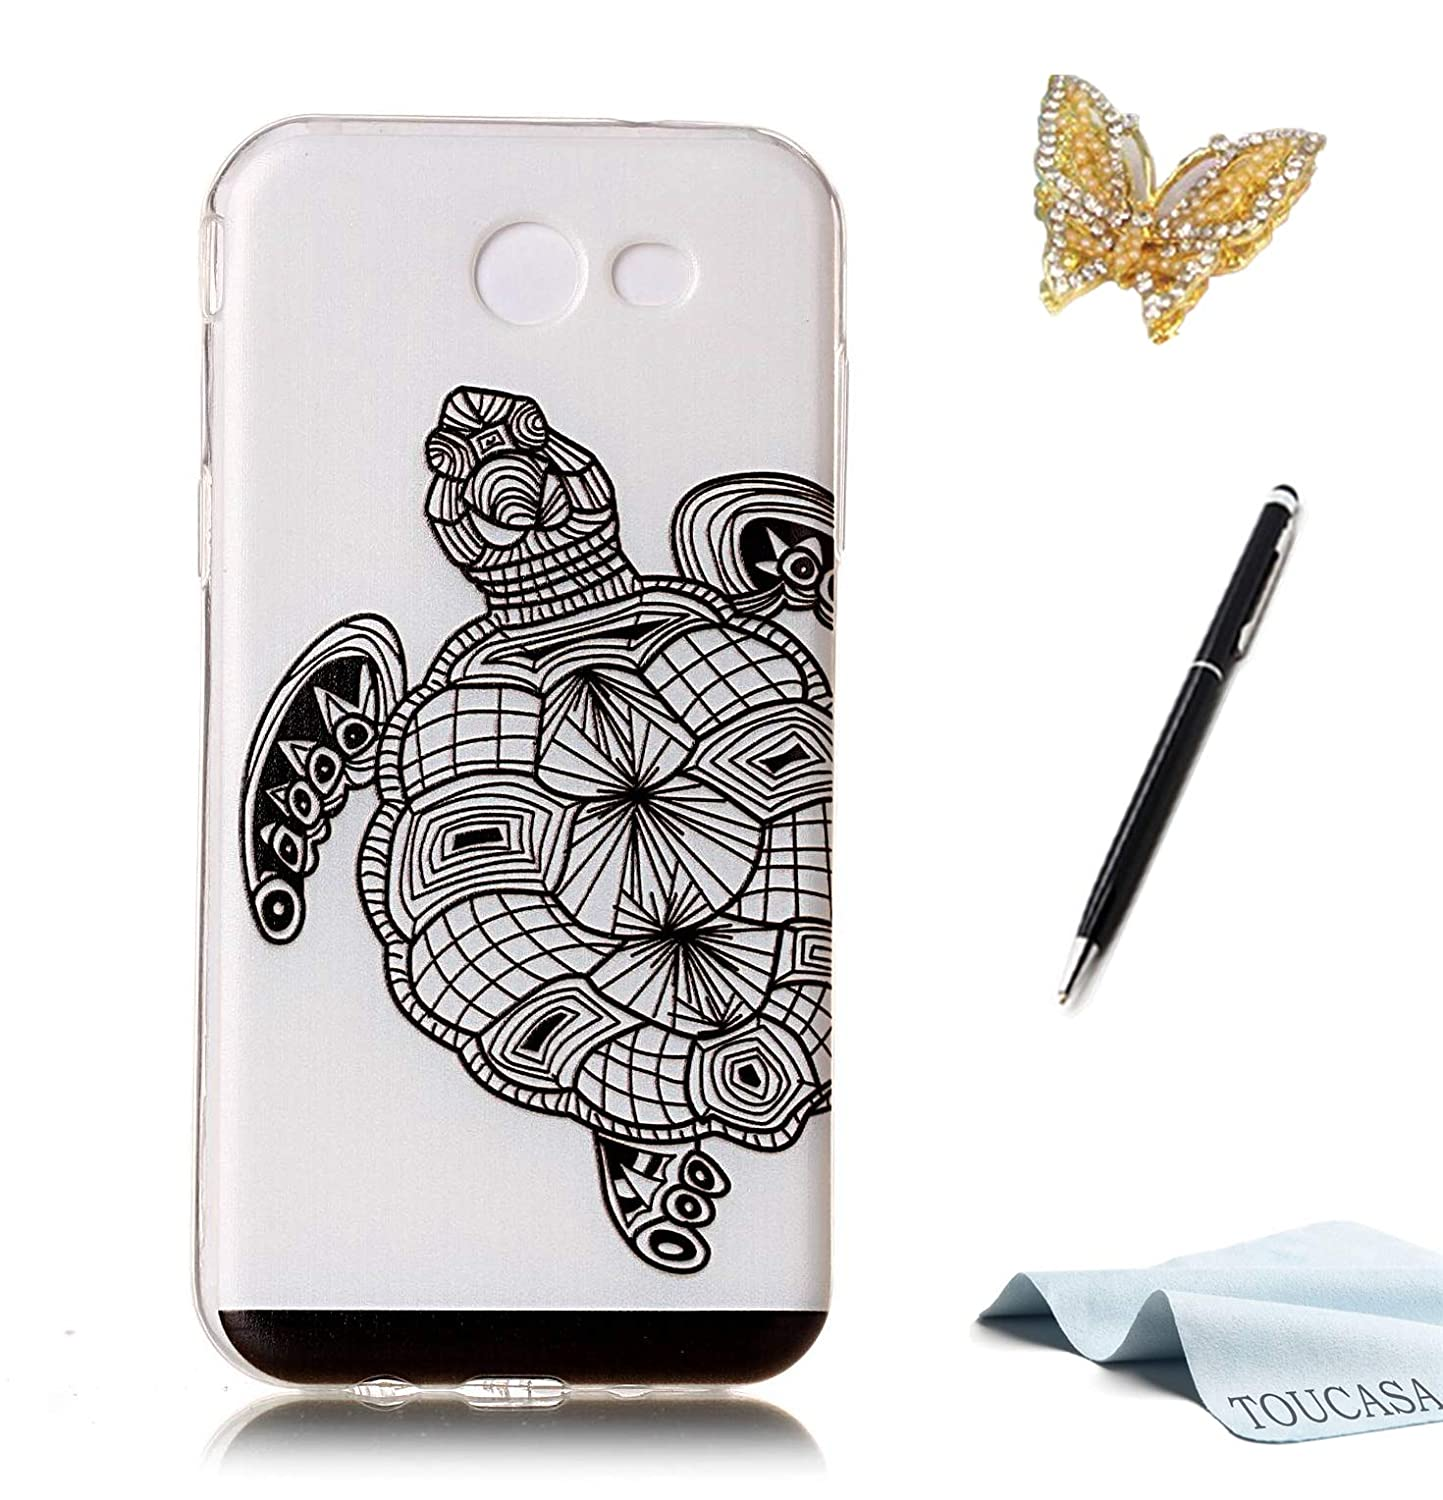 Coque Galaxy J5 2016, Housse Galaxy J5 2016, TOUCASA Anti Choc Silicone Coque, Bling Mince Souple Premium Hybrid Crystal Clear Flex Soft Gel Cover Skin Extra Slim Cristal Clair Gel TPU Neuf Style Brillant Bling Glitter Sparkle Pailletee Silicone Caoutchouc